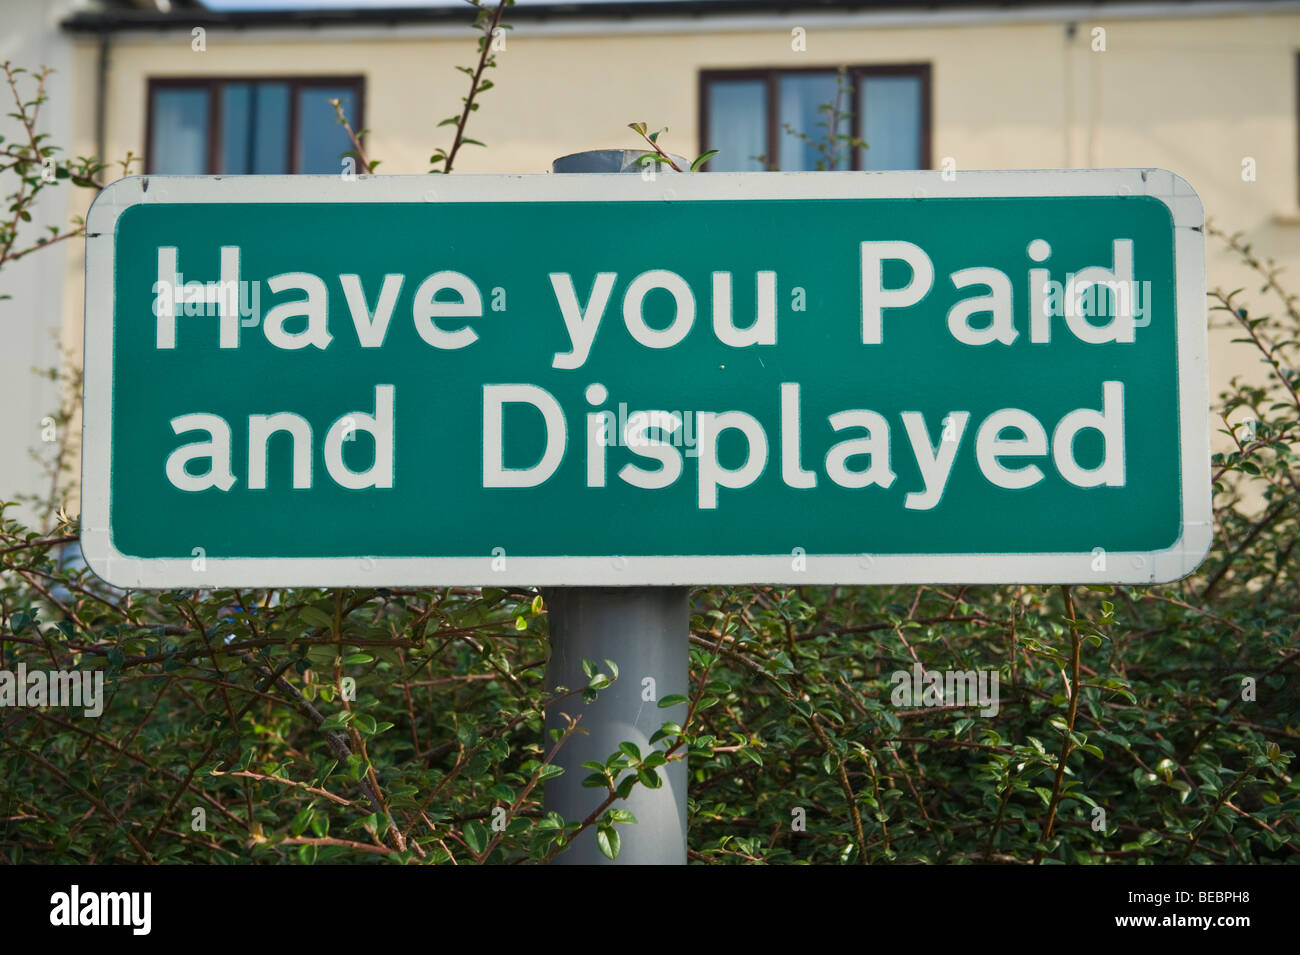 HAVE YOU PAID AND DISPLAYED sign in car park UK - Stock Image